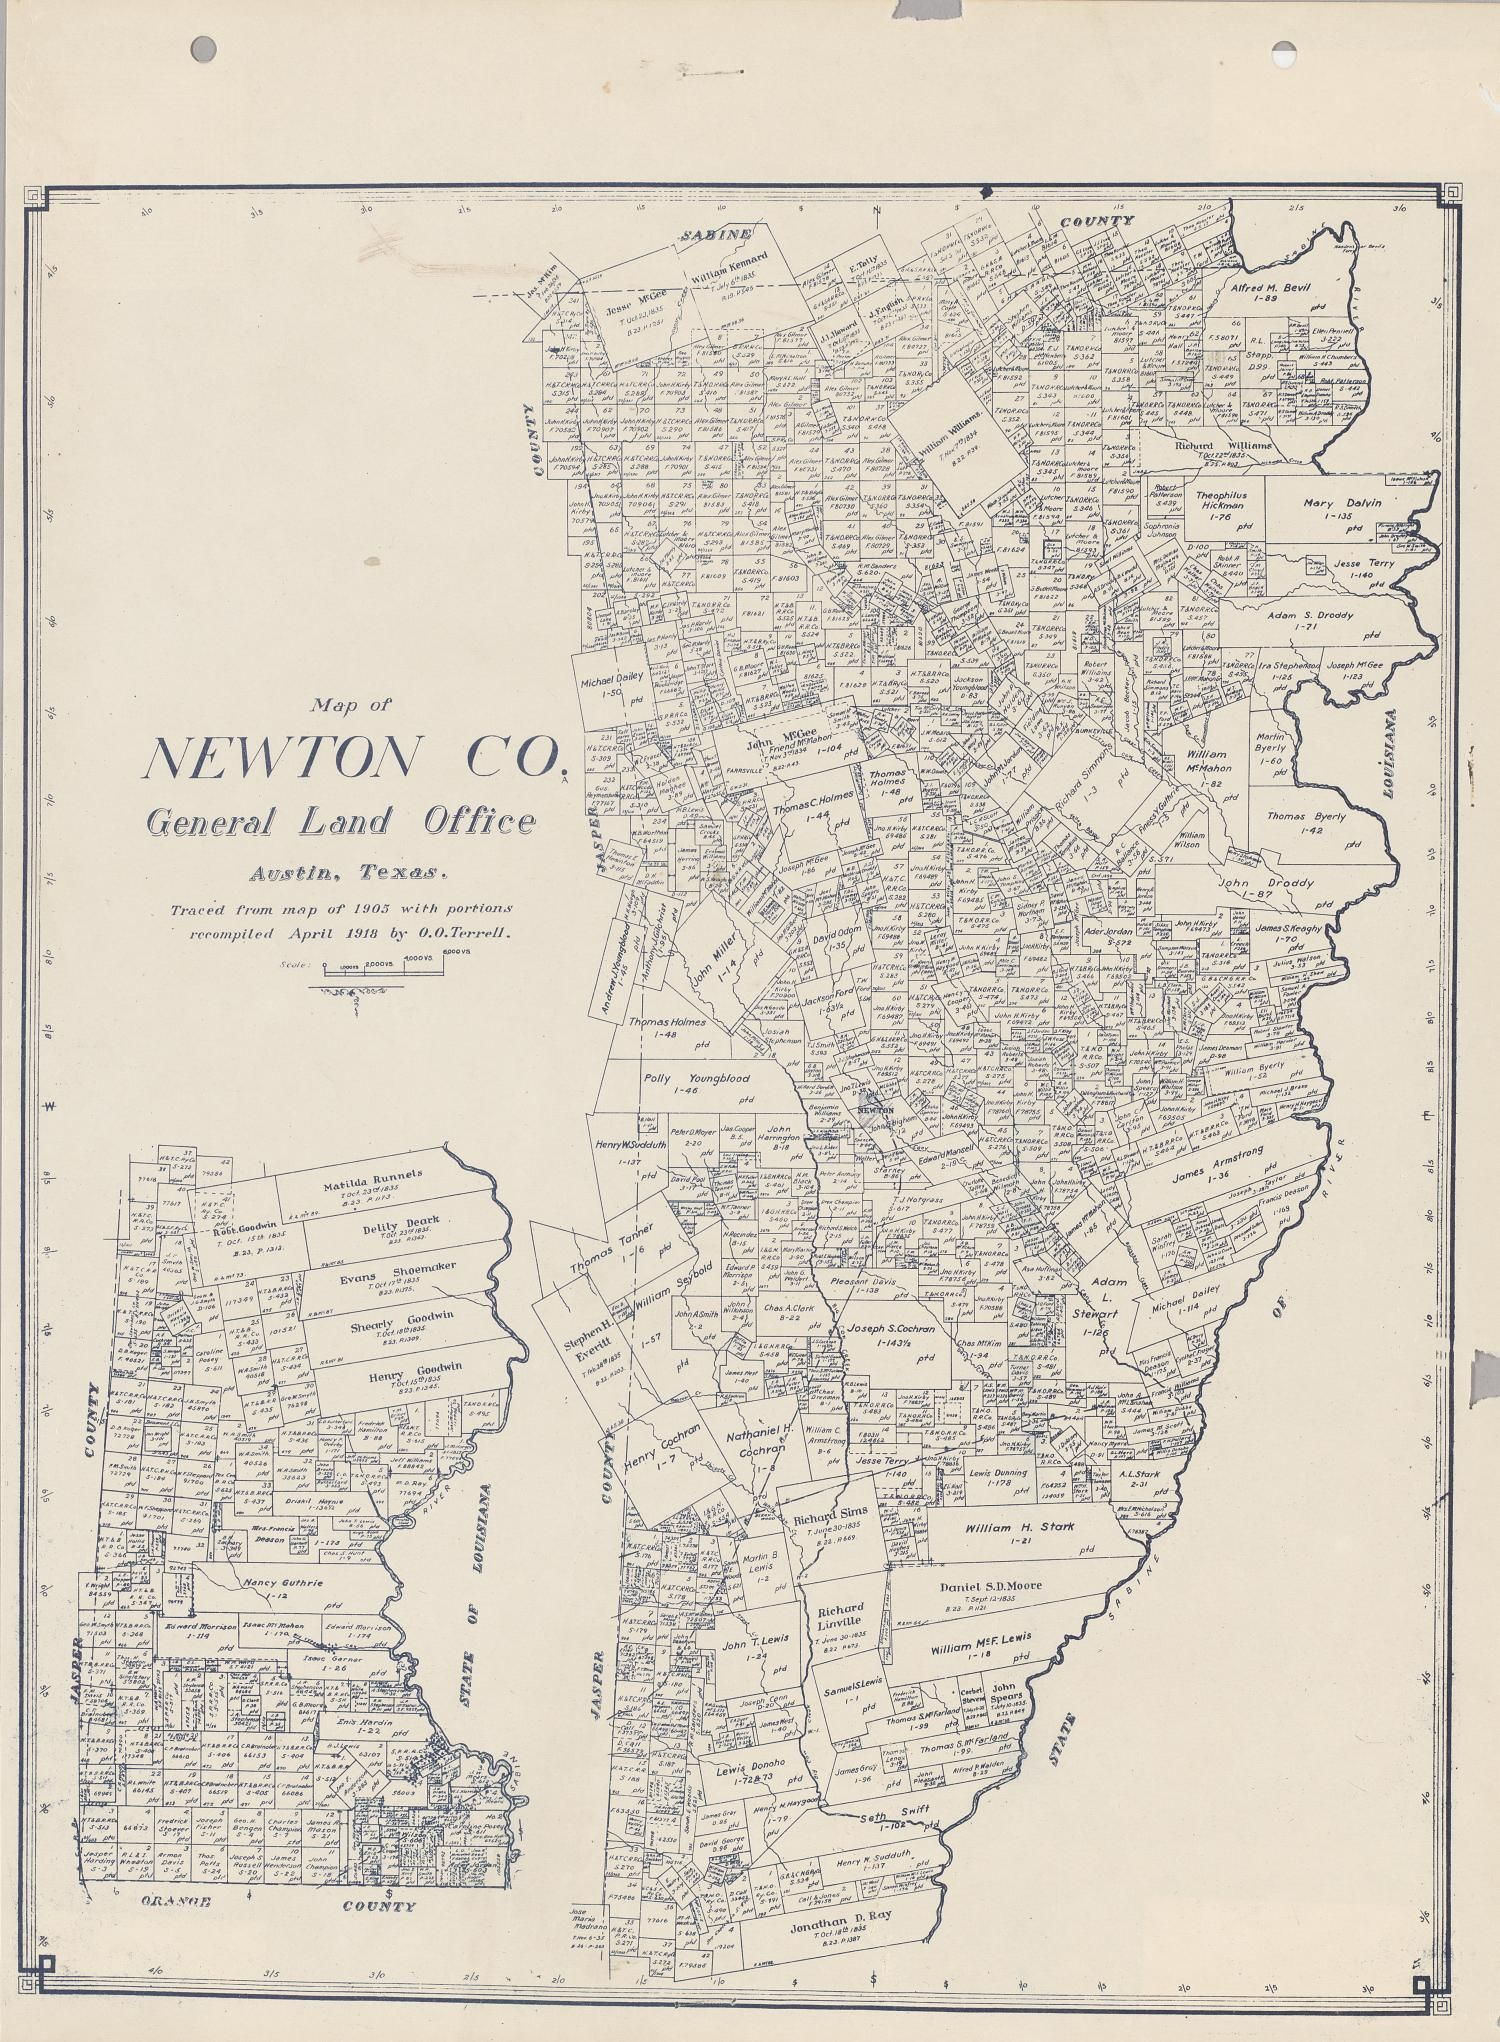 Map Of Texas Cities And Rivers.Blue Line Print Of Survey Map Of Newton County Texas Showing